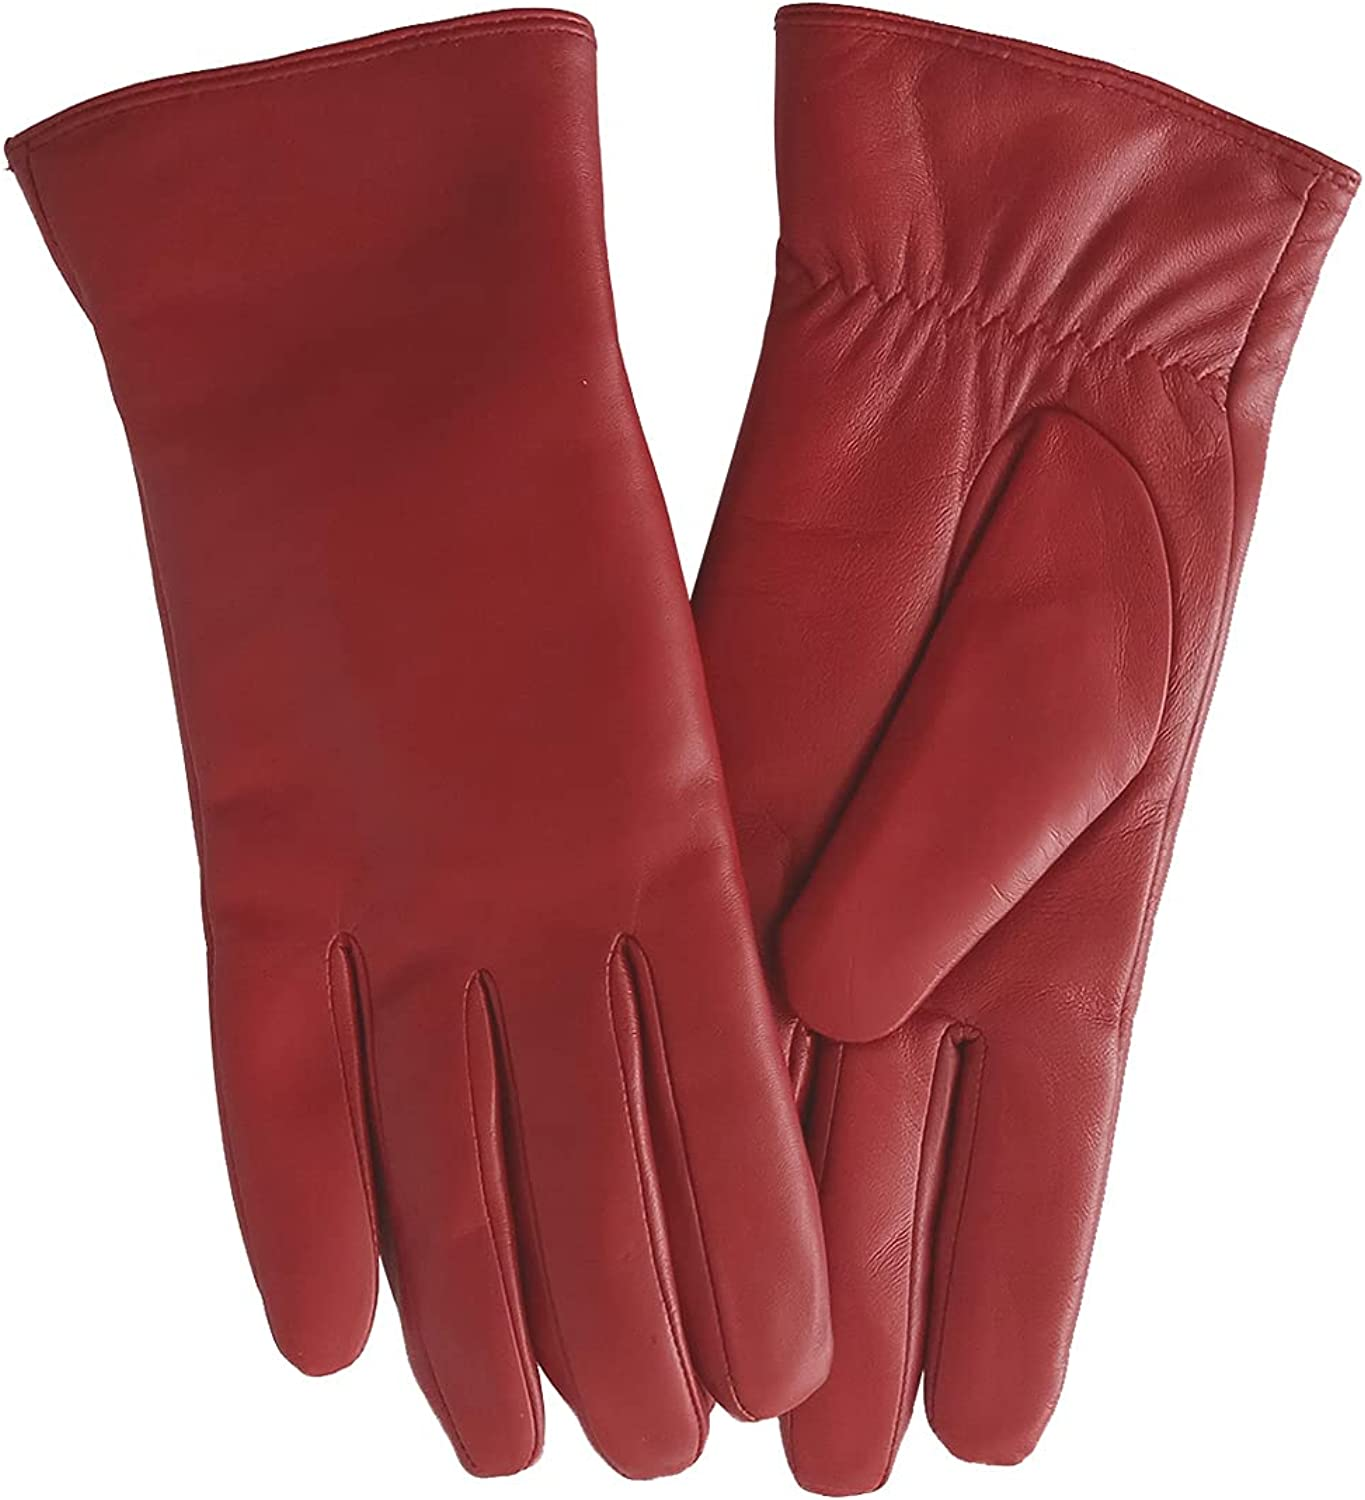 LIBO Winter Soft Leather Gloves for Womens Warm Plush Lining Full-hands Touchscreen Luxury Gloves